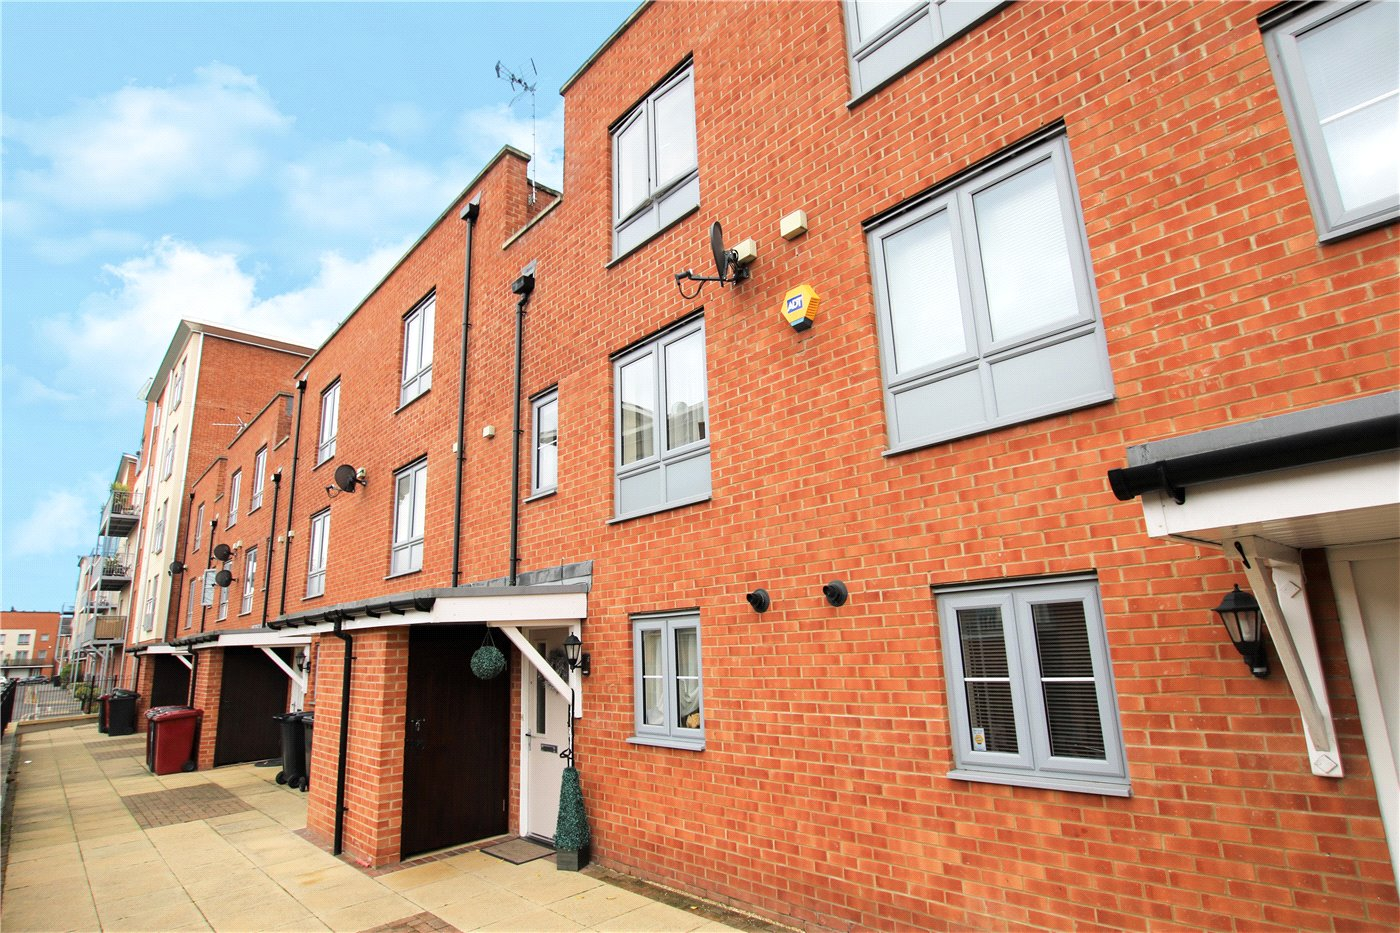 4 Bedrooms Terraced House for sale in Battle Square, Reading, Berkshire, RG30